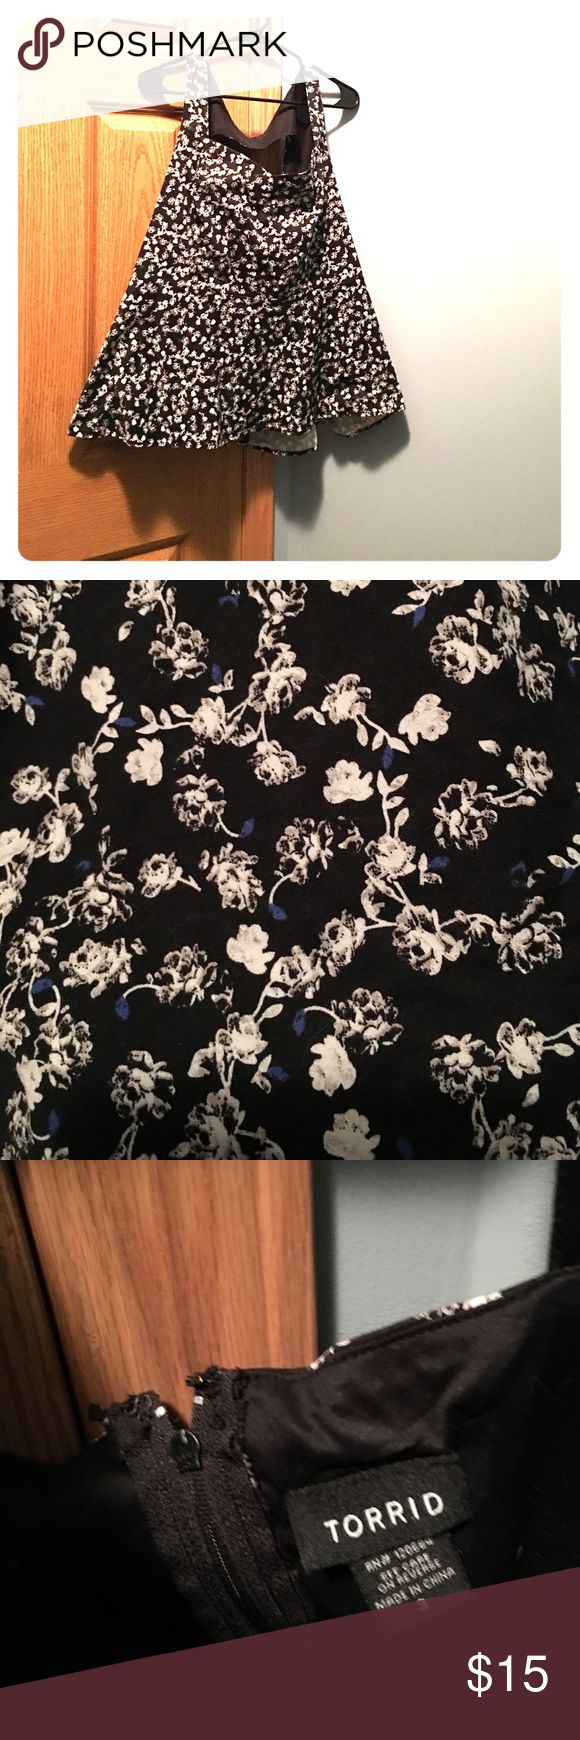 Torrid peplum style dress shirt Cute black peplum cut shirt with white flowers and specs of dark blue. Size 3. Last pic is of the back, cute cut out on upper half. torrid Tops